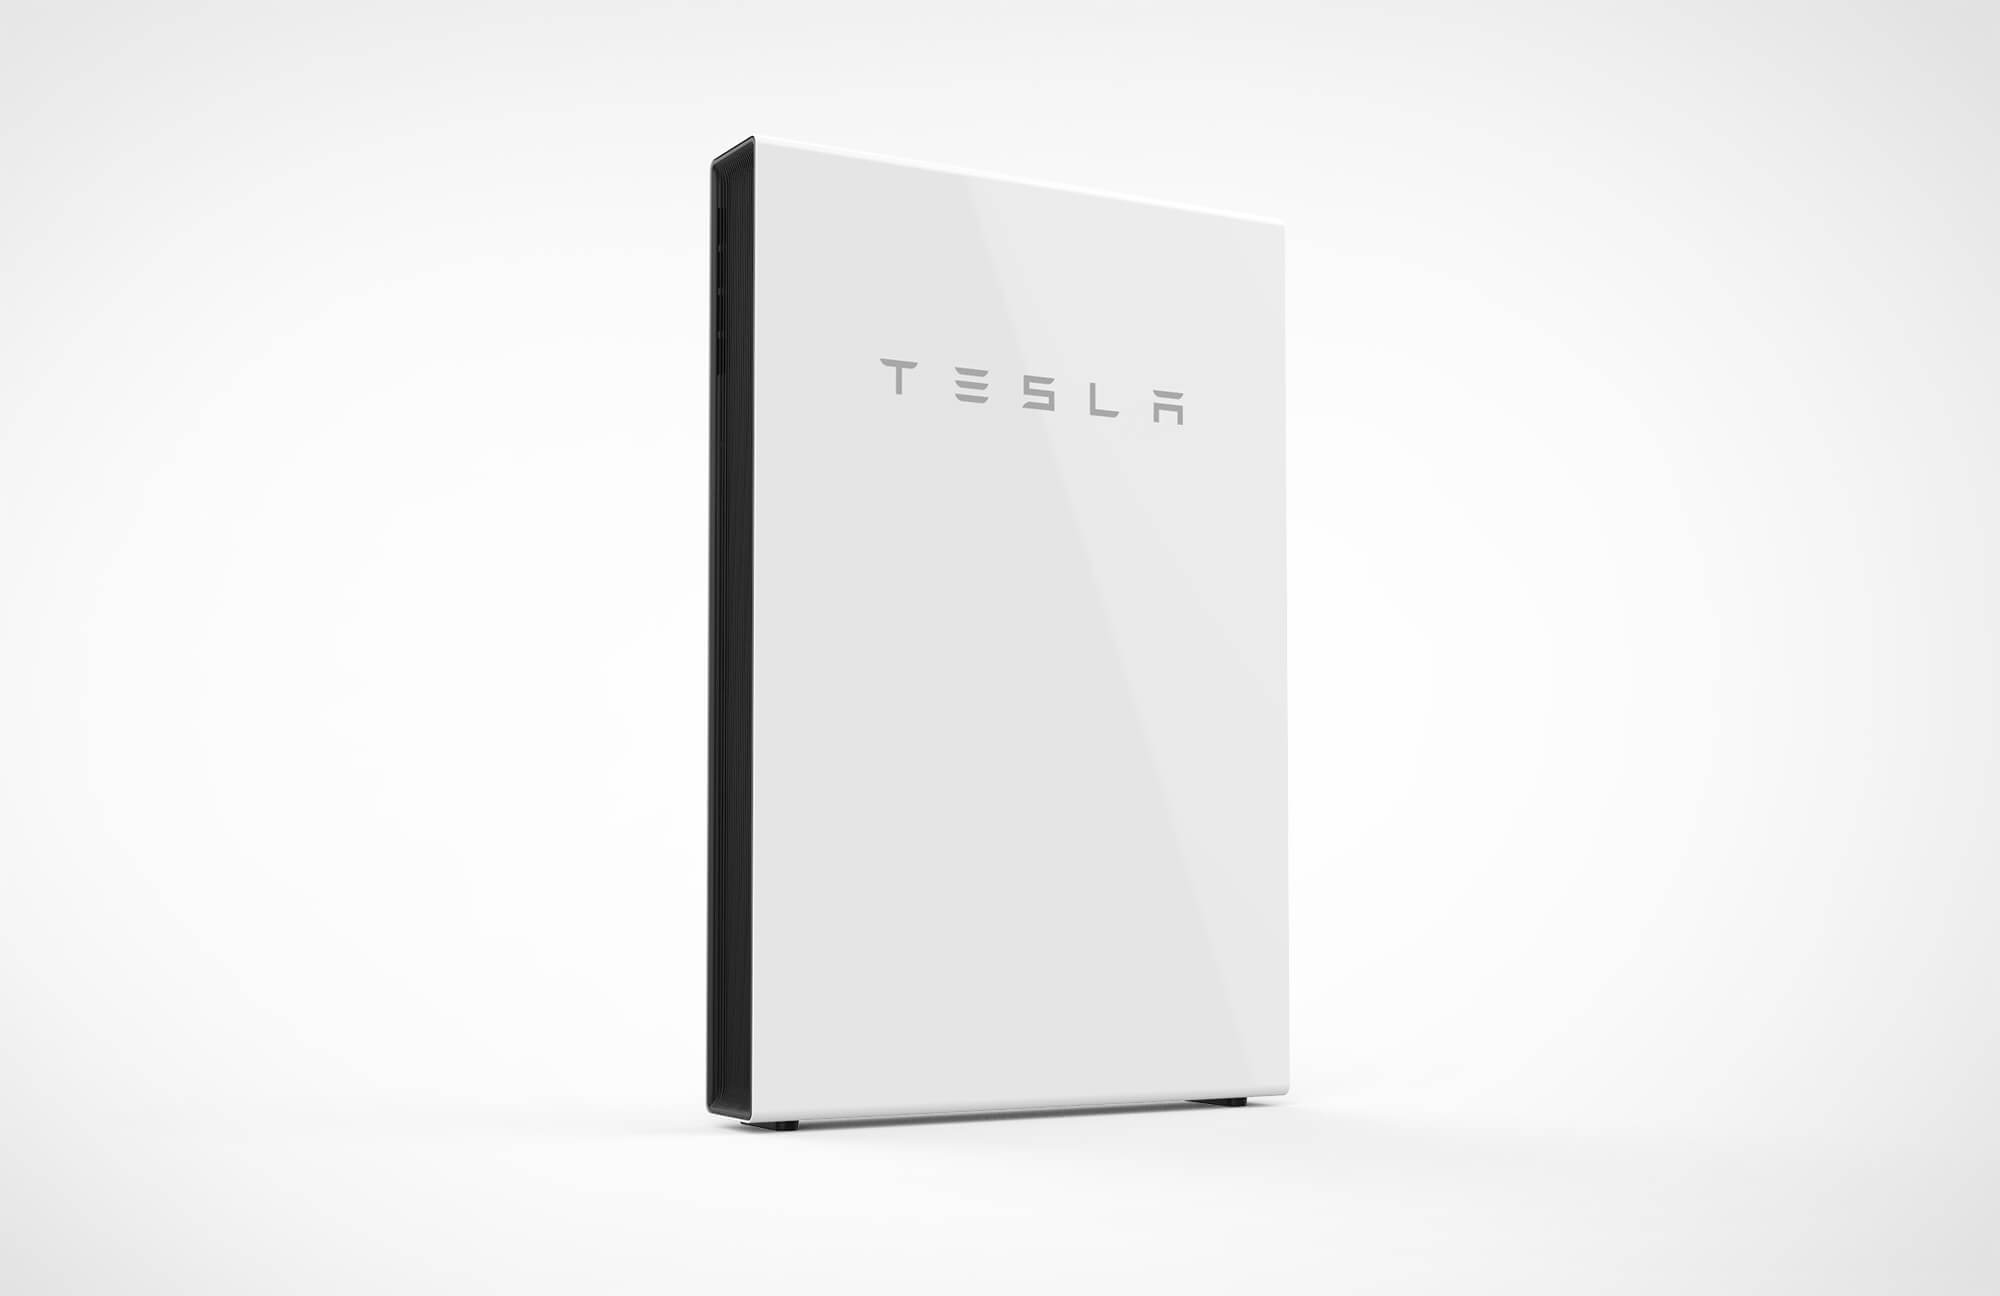 press_powerwall2_front_angle